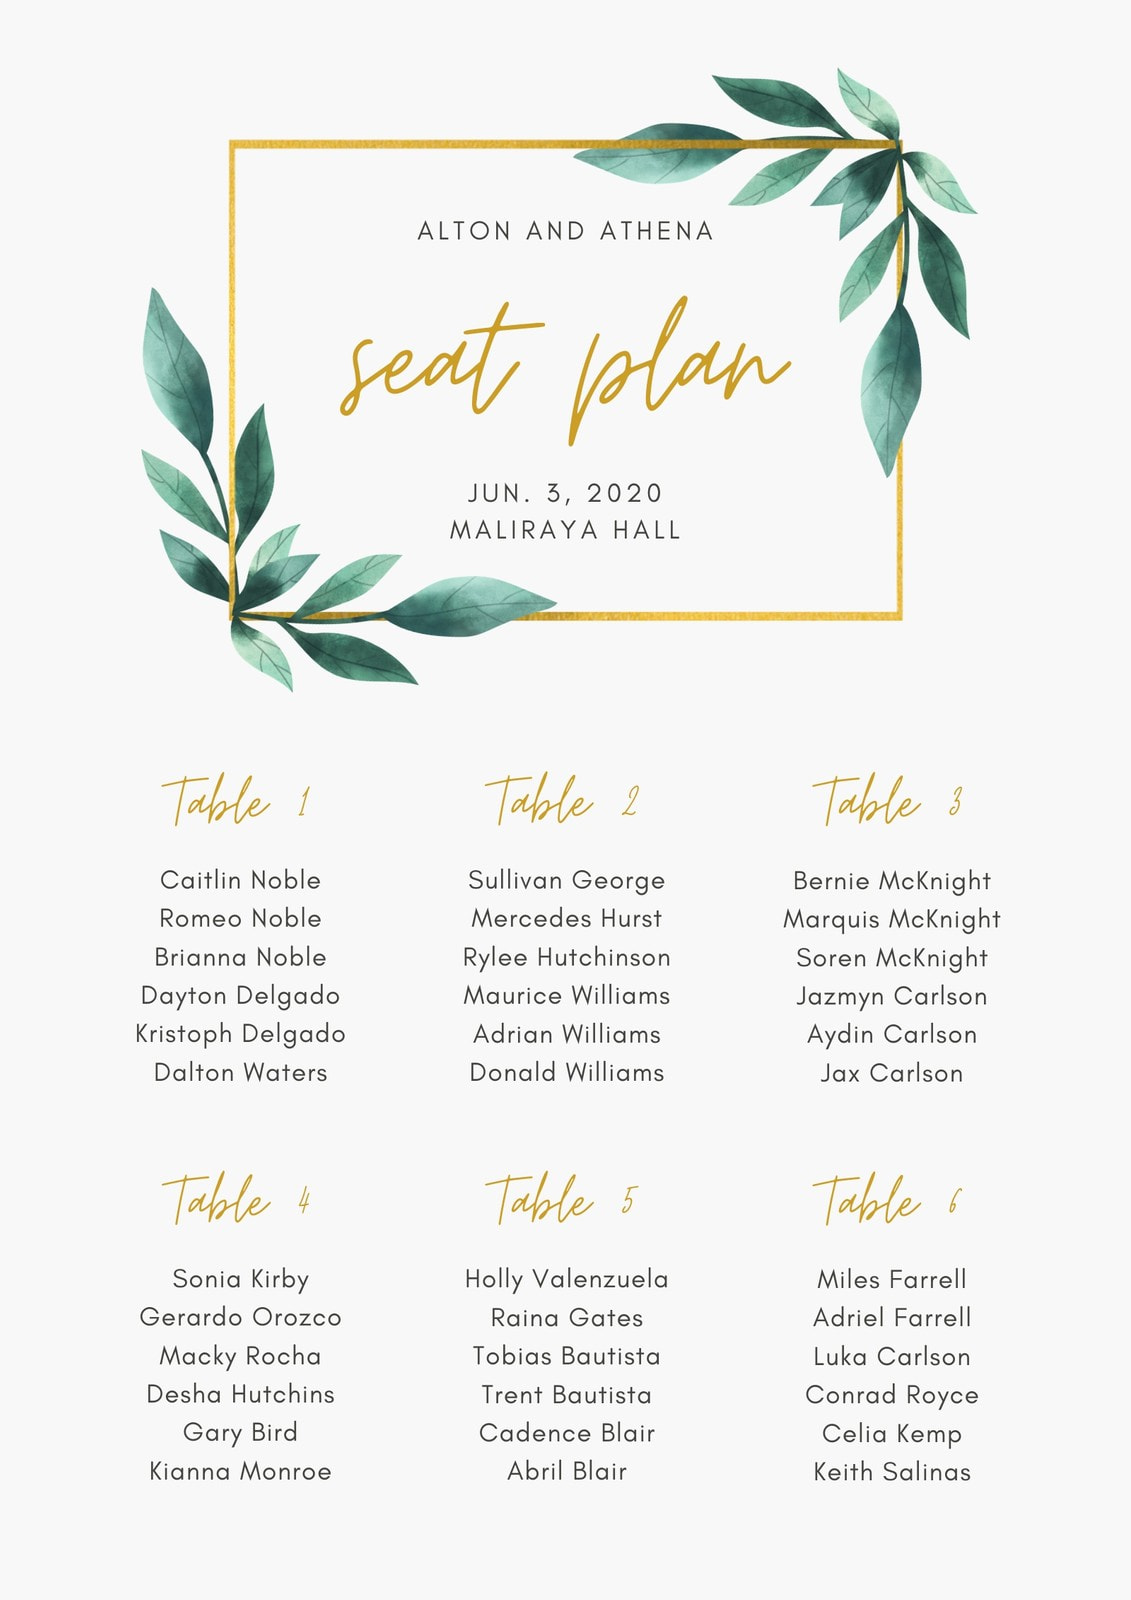 Green and Gold Box Border Geometric Floral Wedding Seating Chart